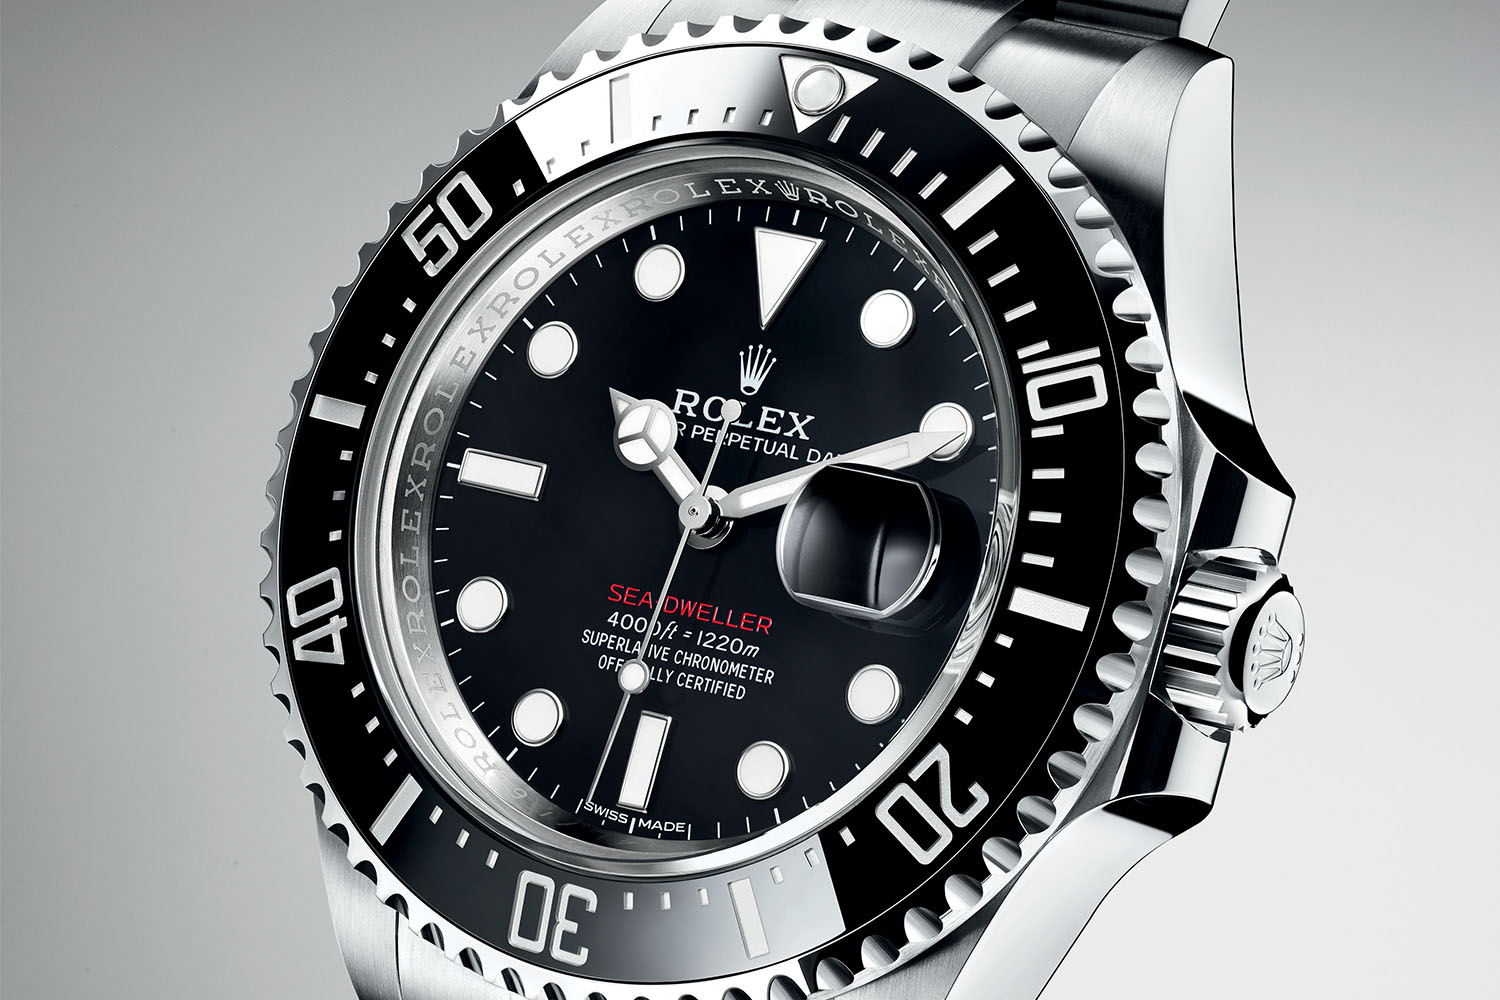 Rolex Sea Dweller 43mm Review